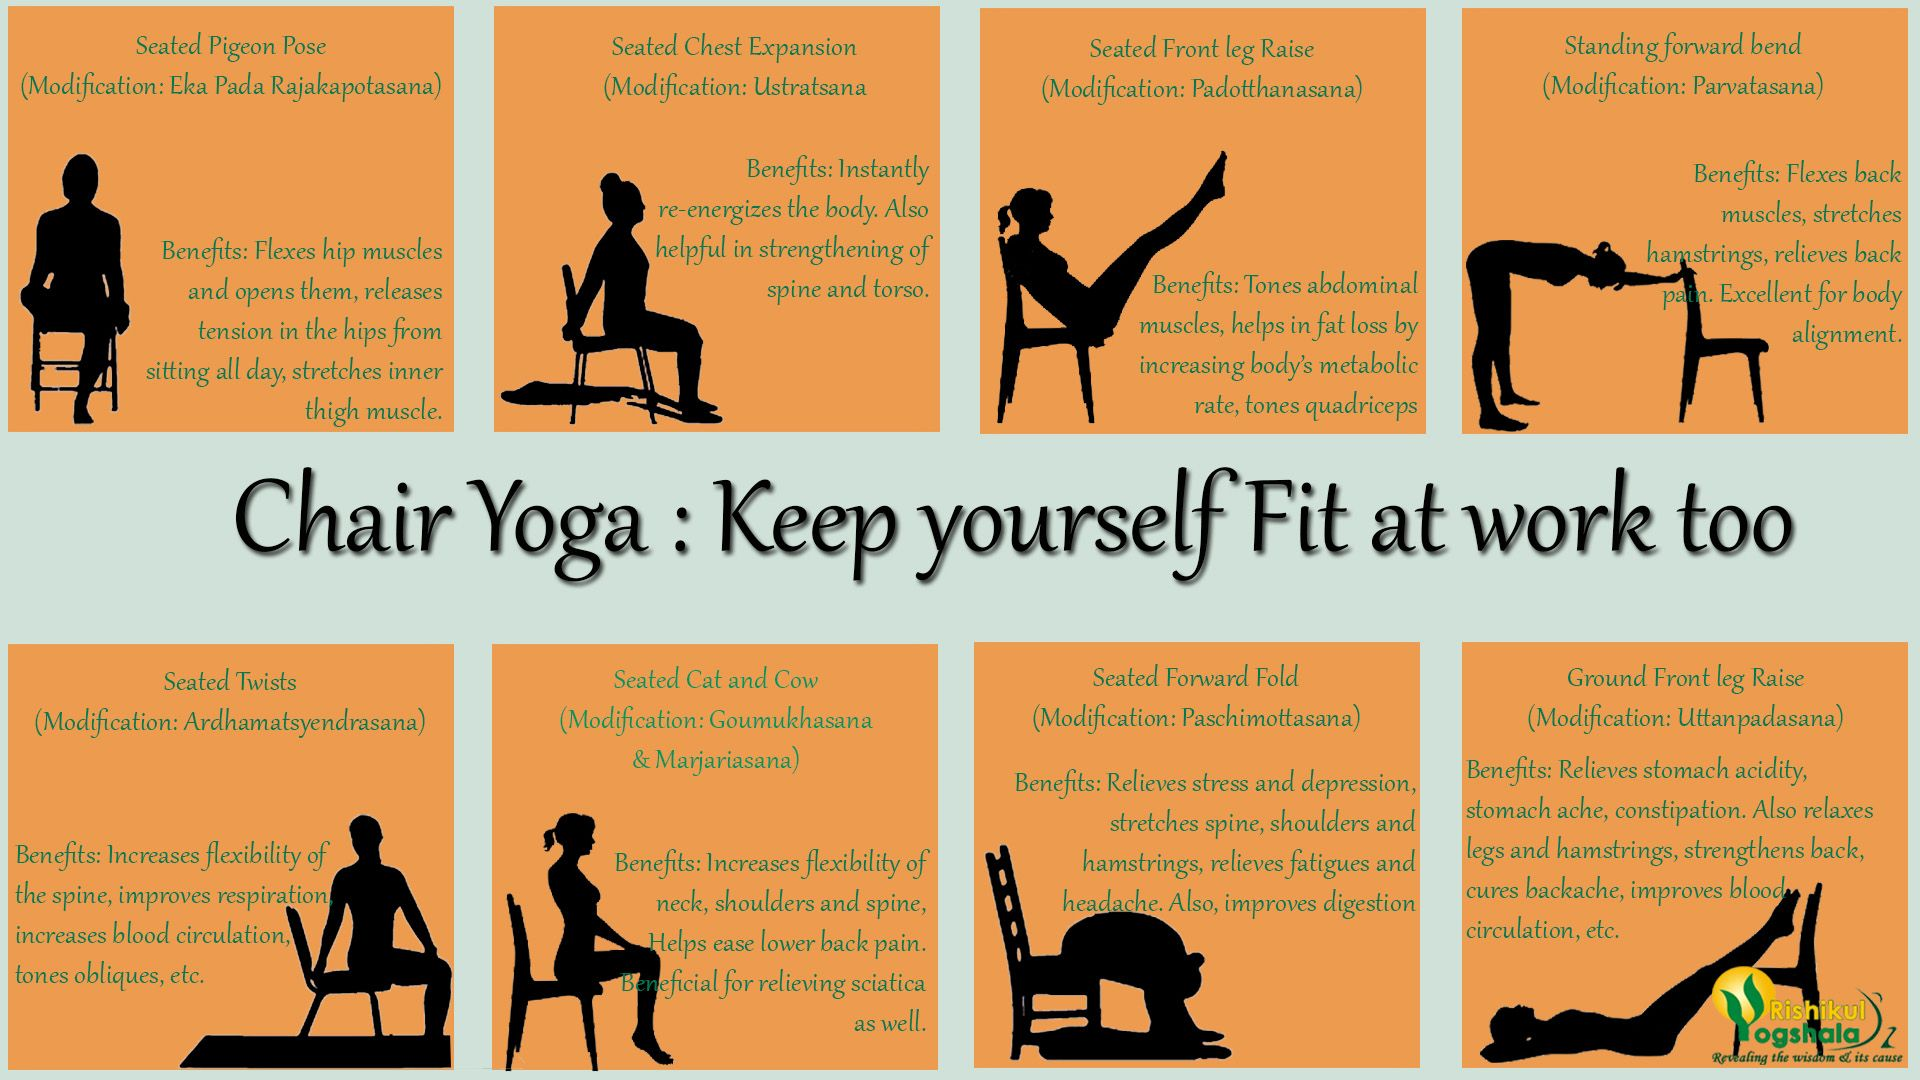 Chair yoga poses - Most Recommended Chair Yoga Poses For Keep Yourself Fit At Work By Rishikul Yogshala